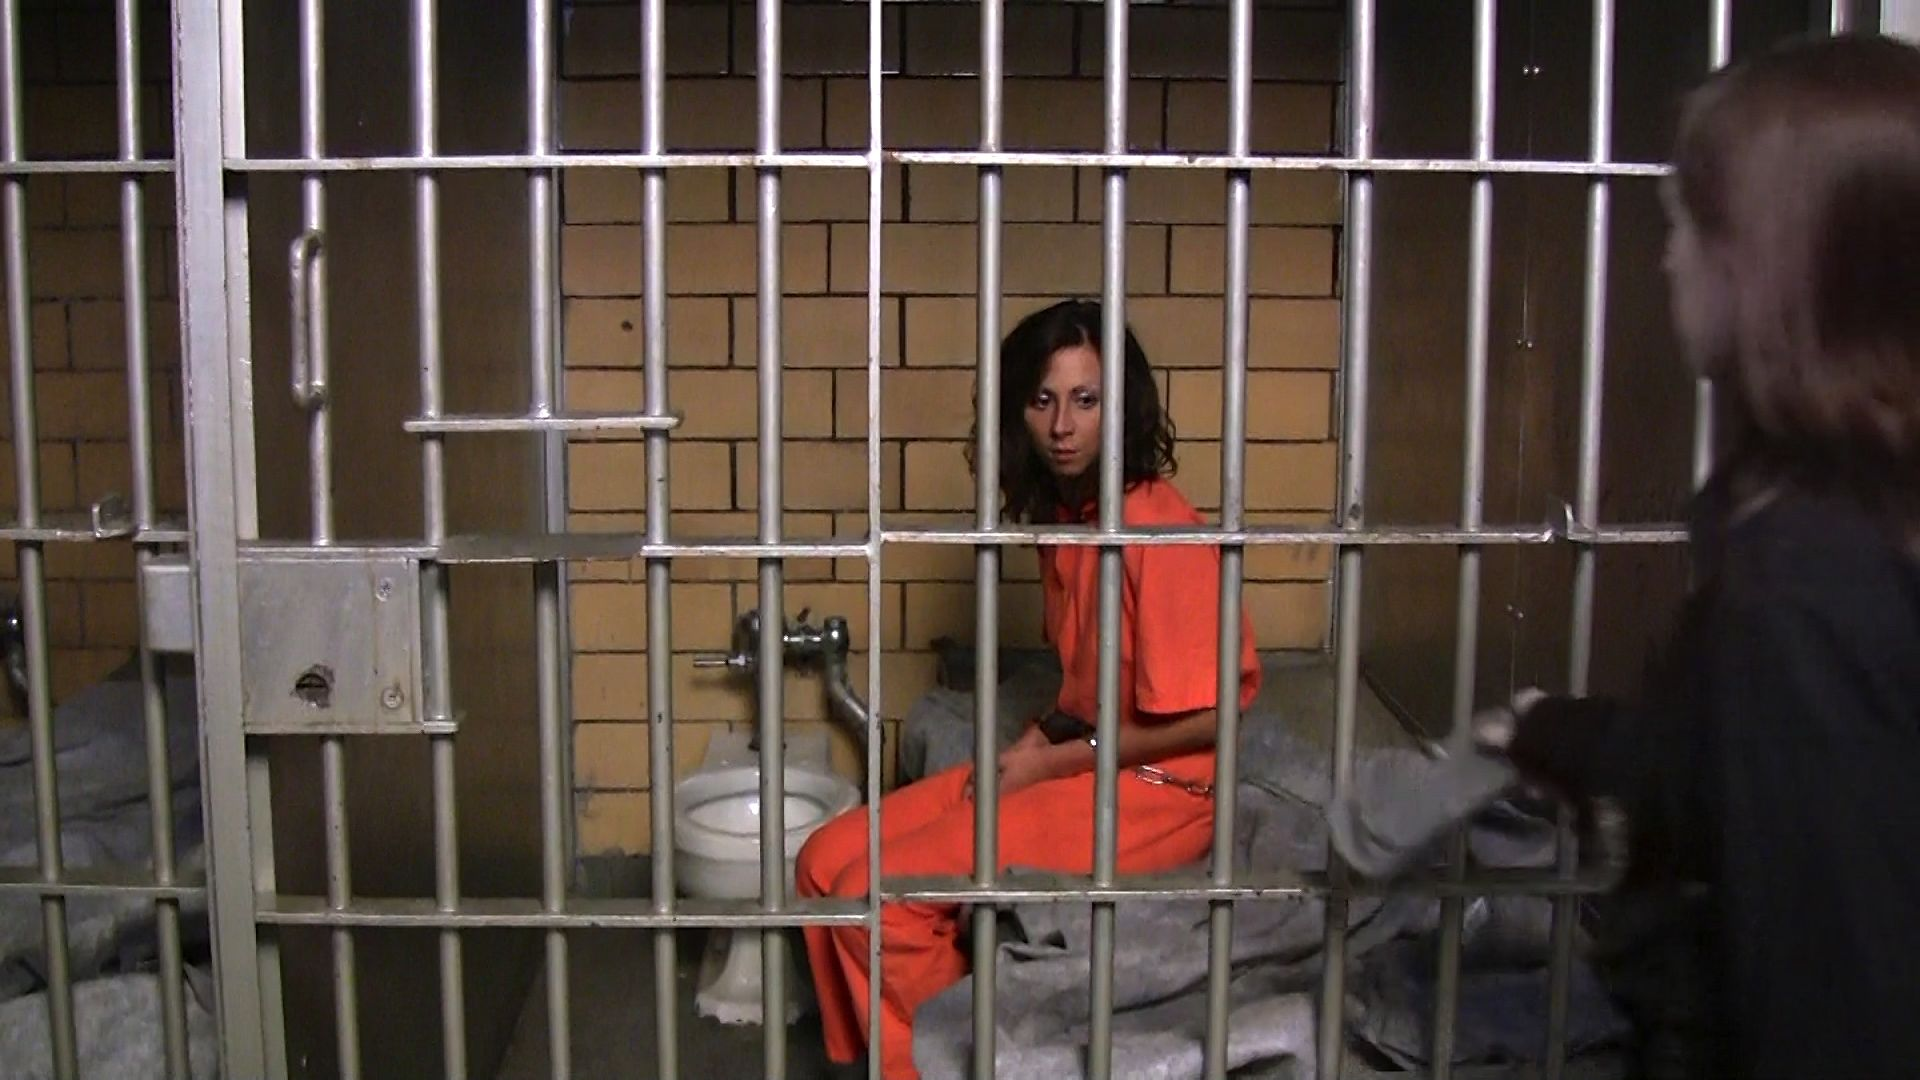 Woman In Jail